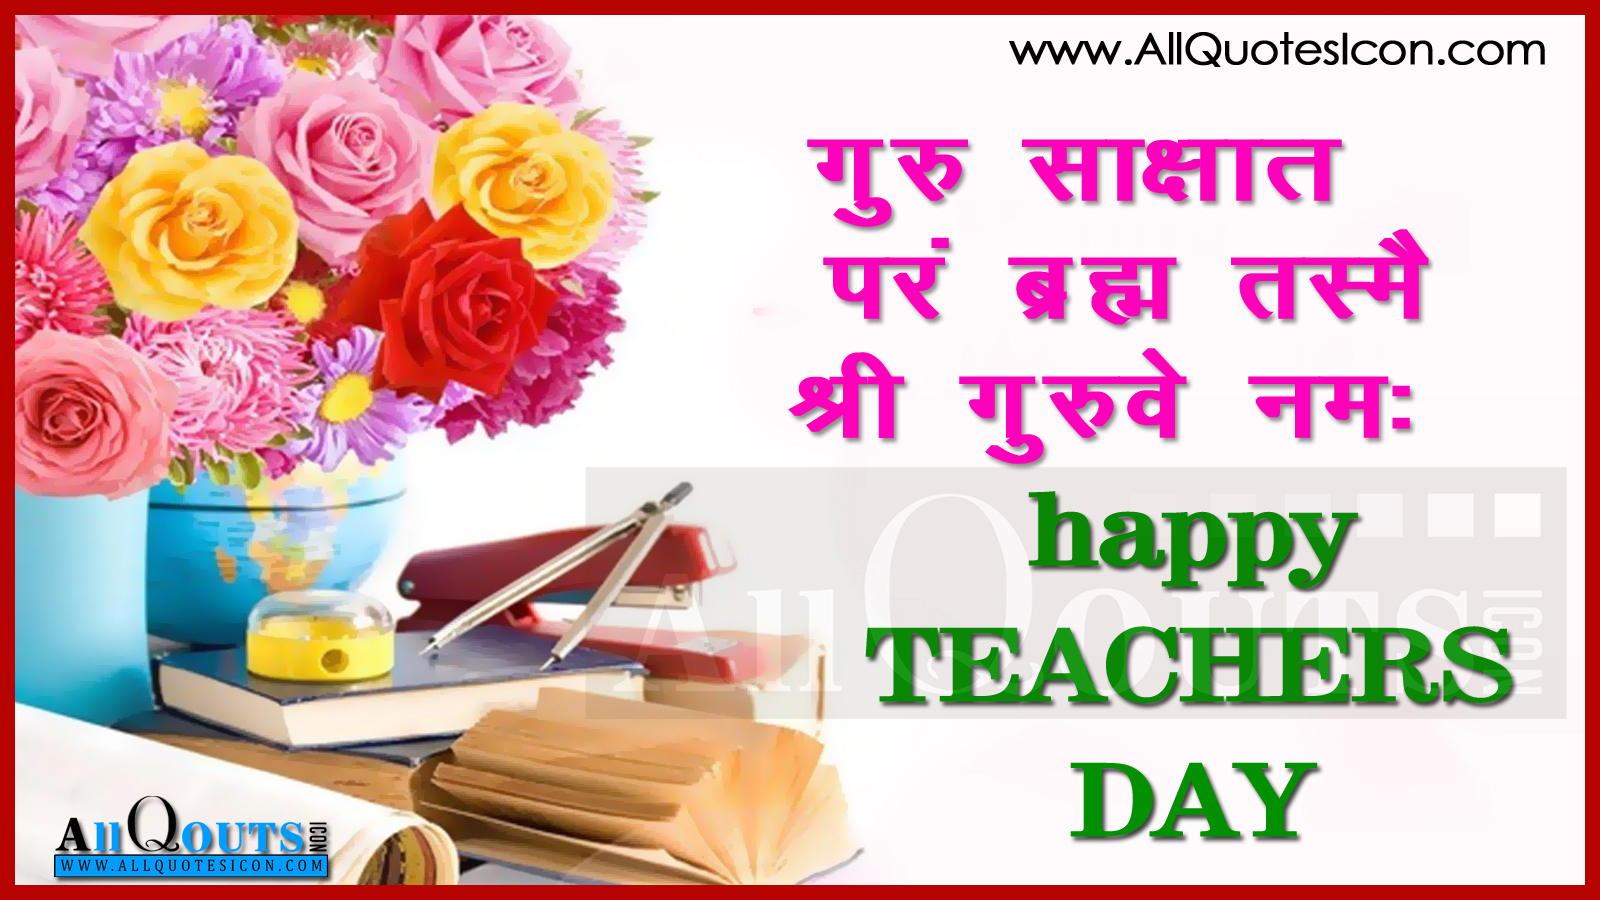 Best Quotes For Teachers Day In Hindi ✓ The Mercedes Benz